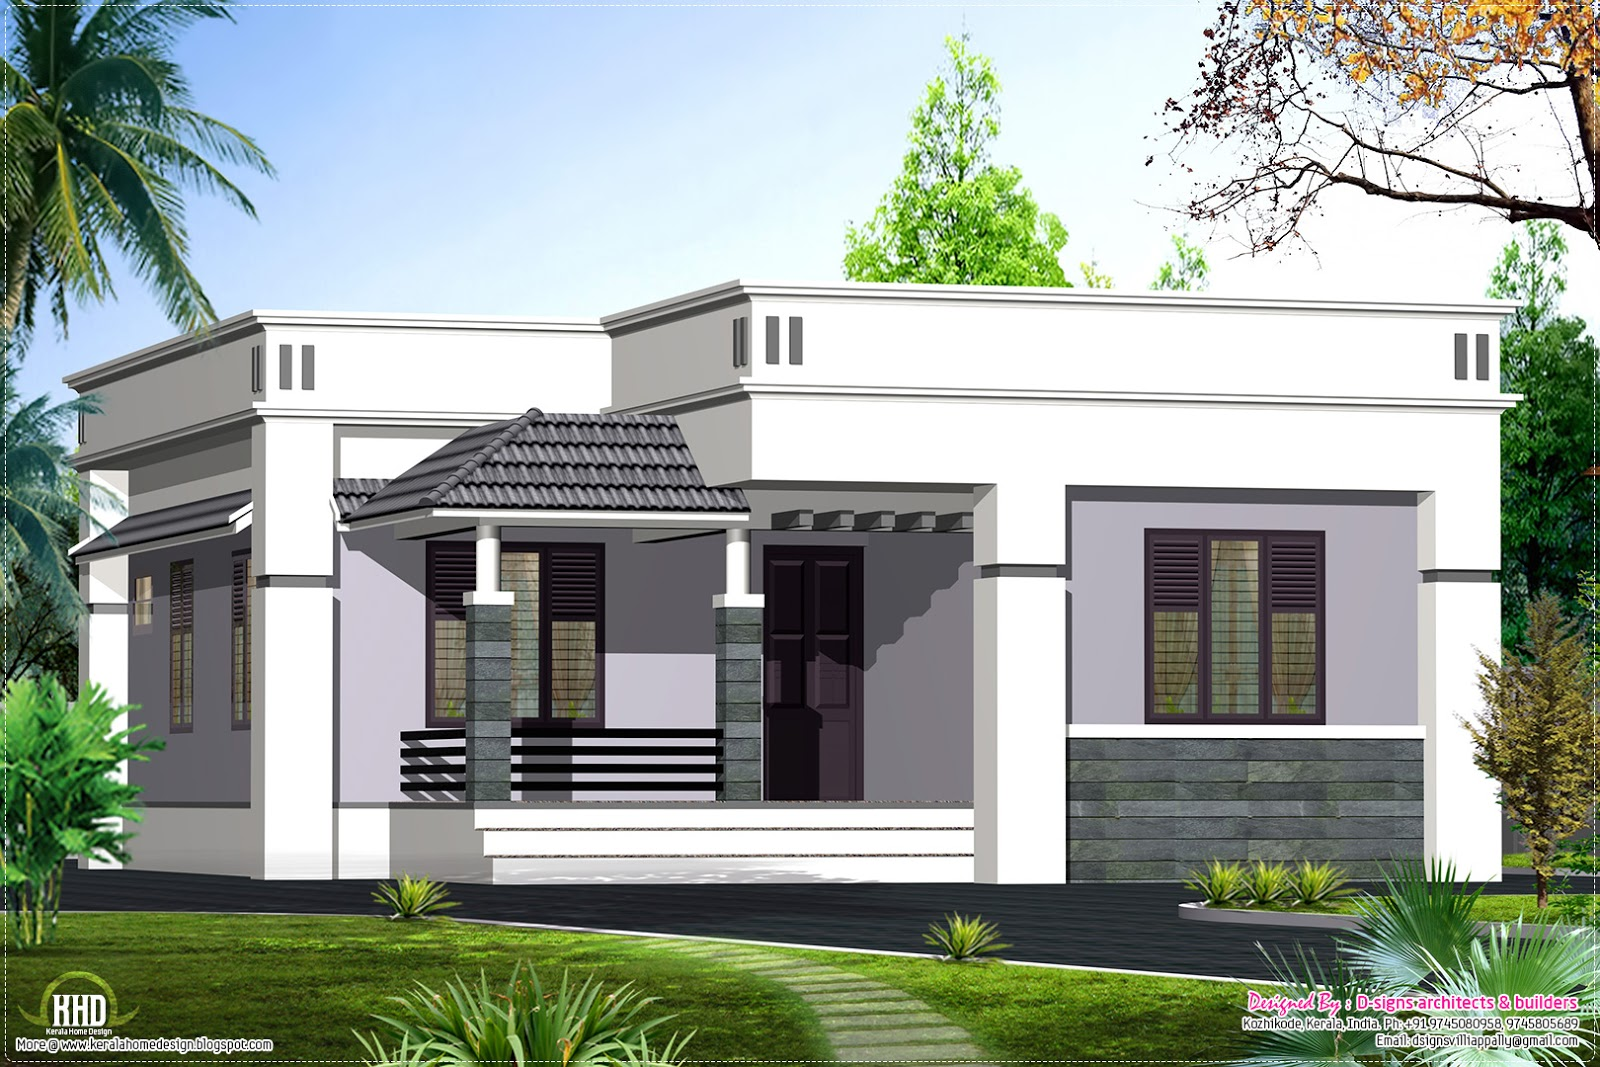 One floor house design 1100 sq.feet